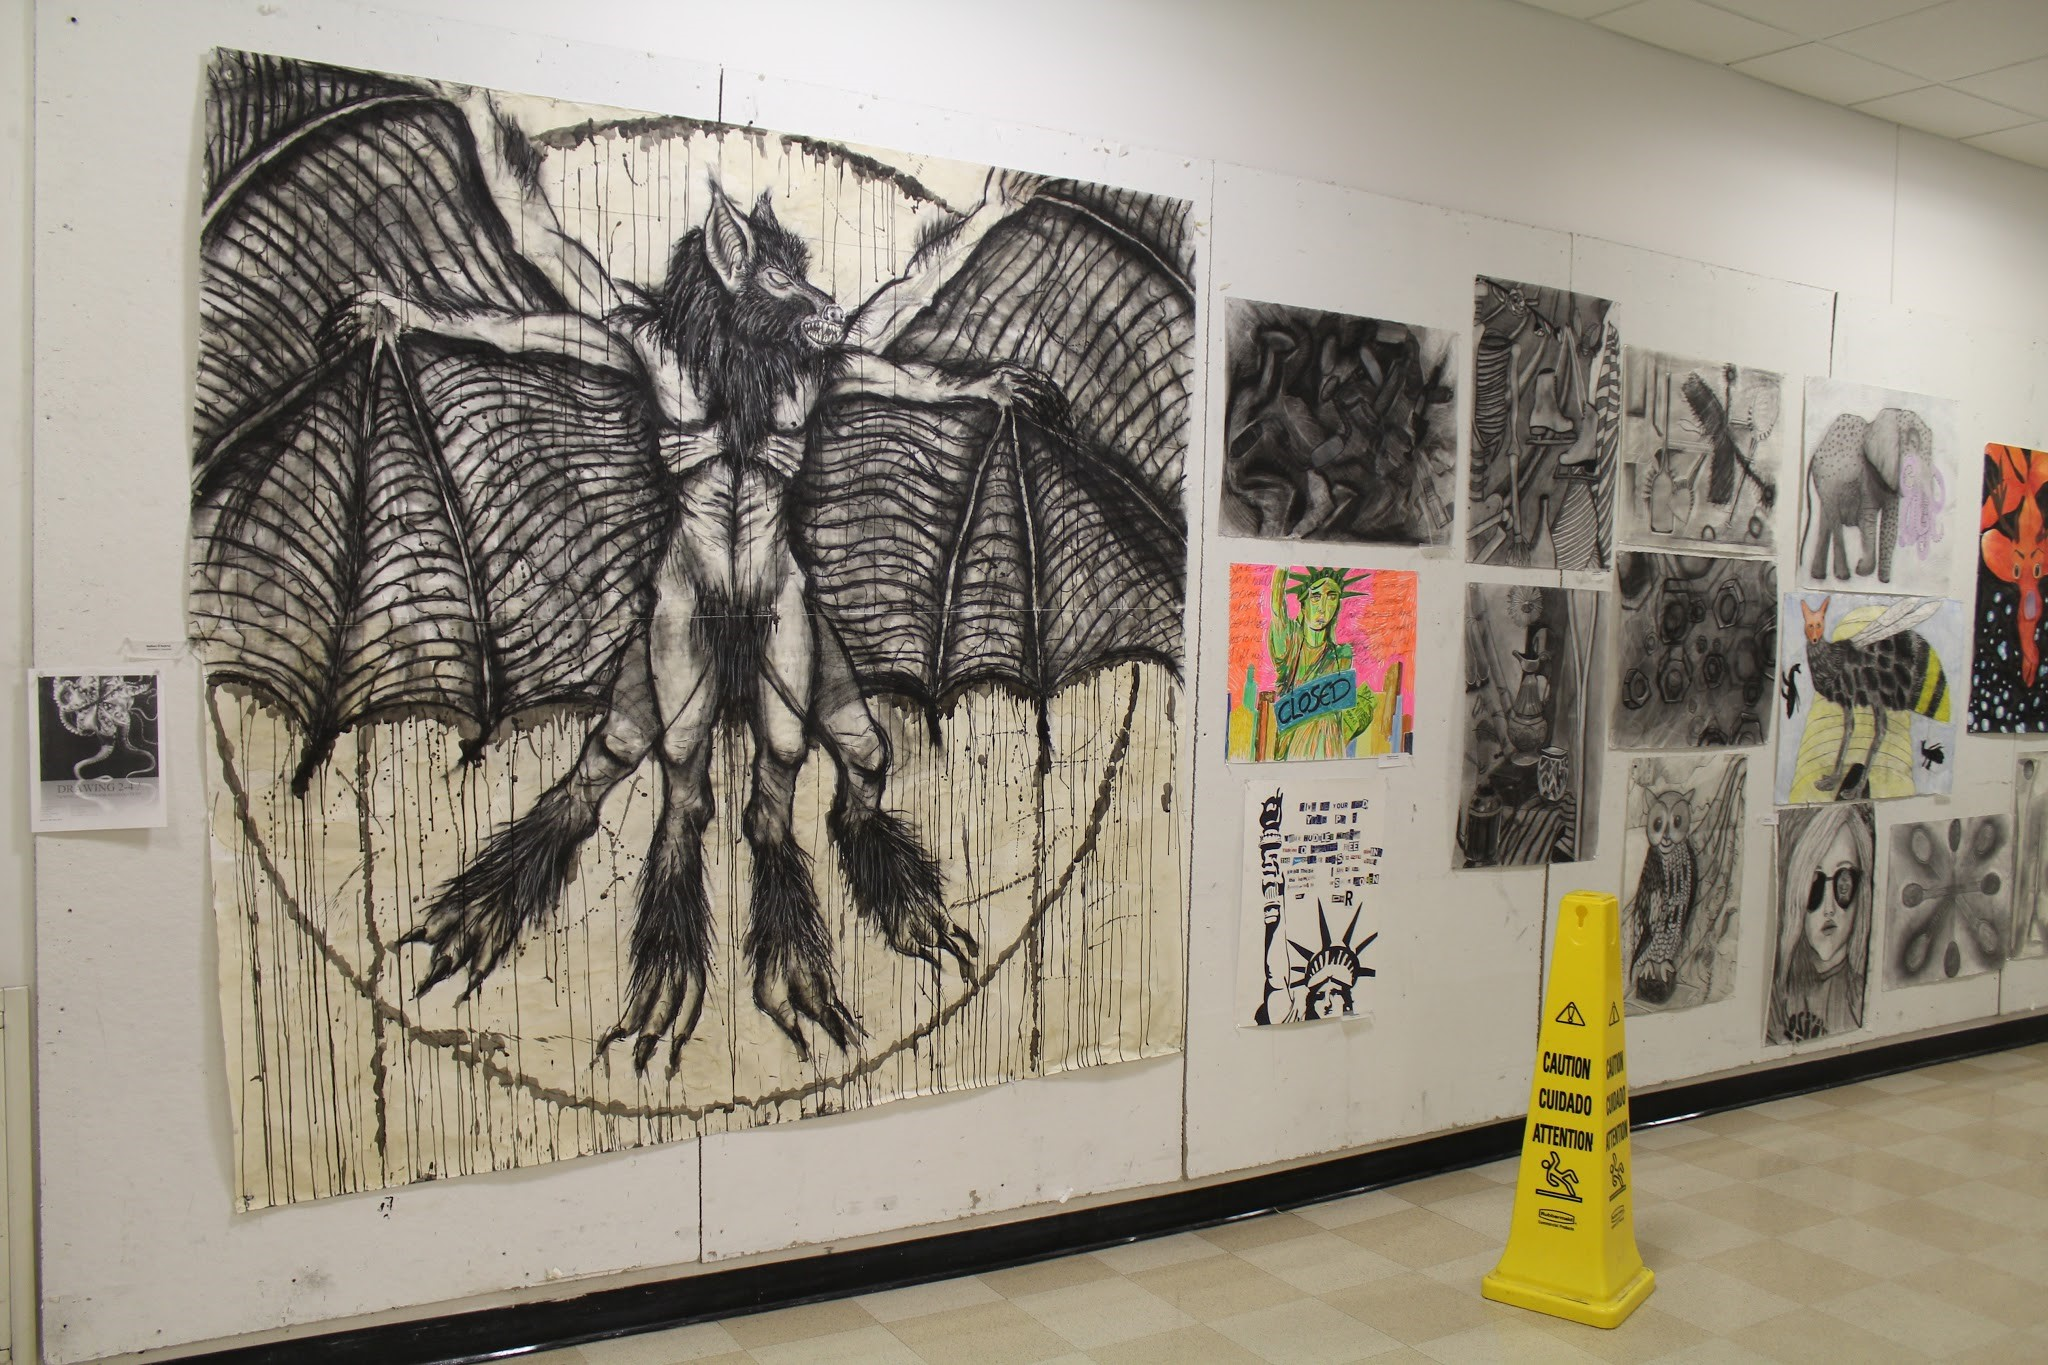 The demonic eagle is drawn by student Nathan D'Aversa. Photo by Chris DiBella.